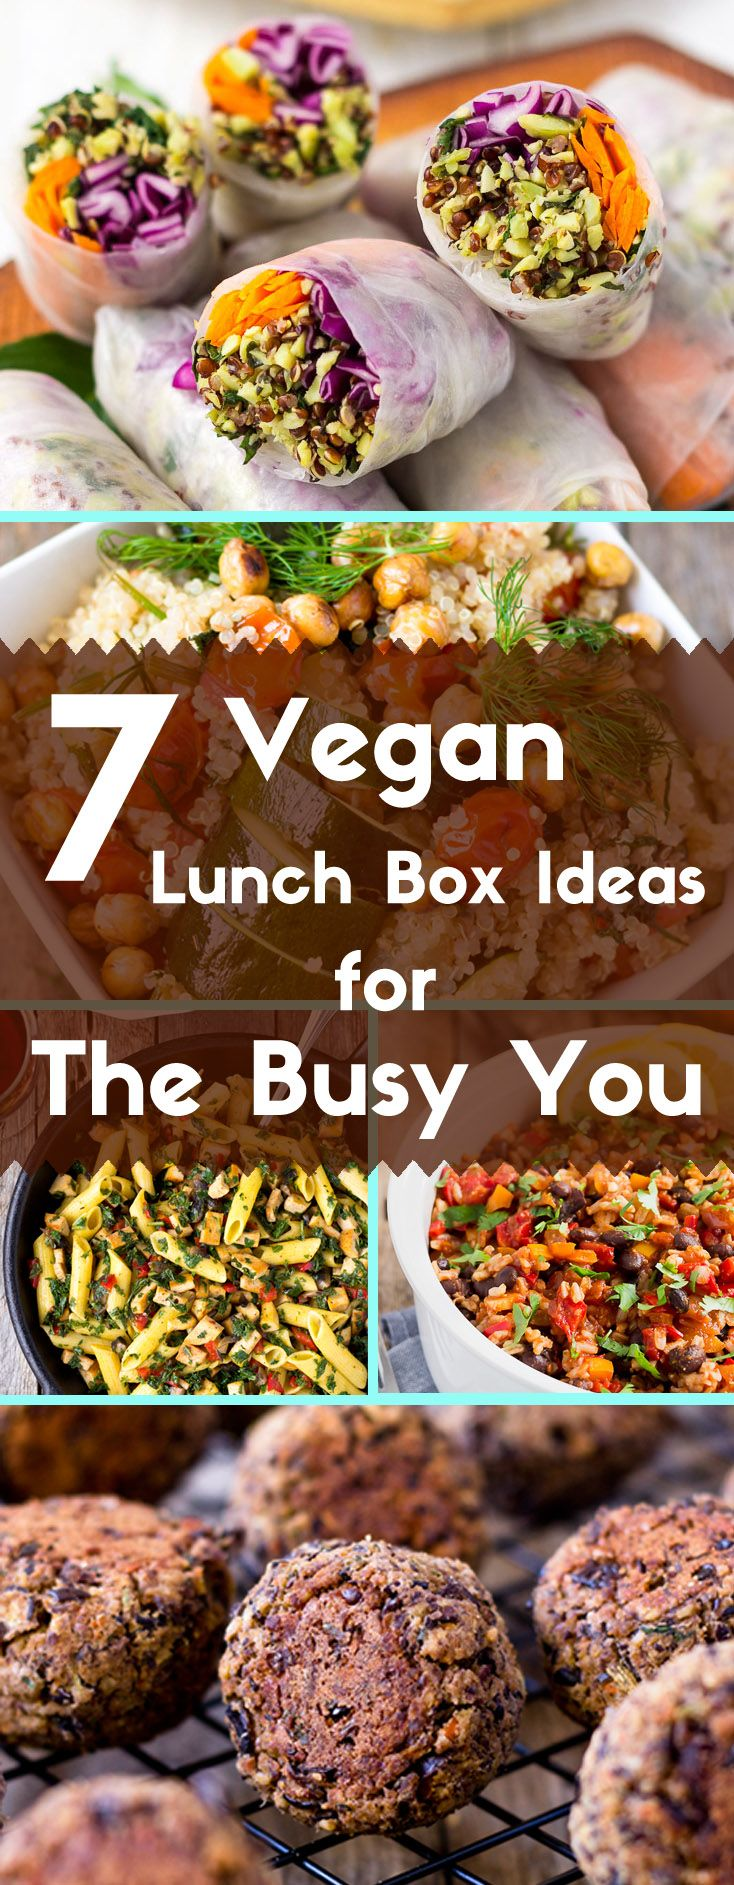 7 Vegan Lunch Box Ideas For The Busy You Awesome Gluten